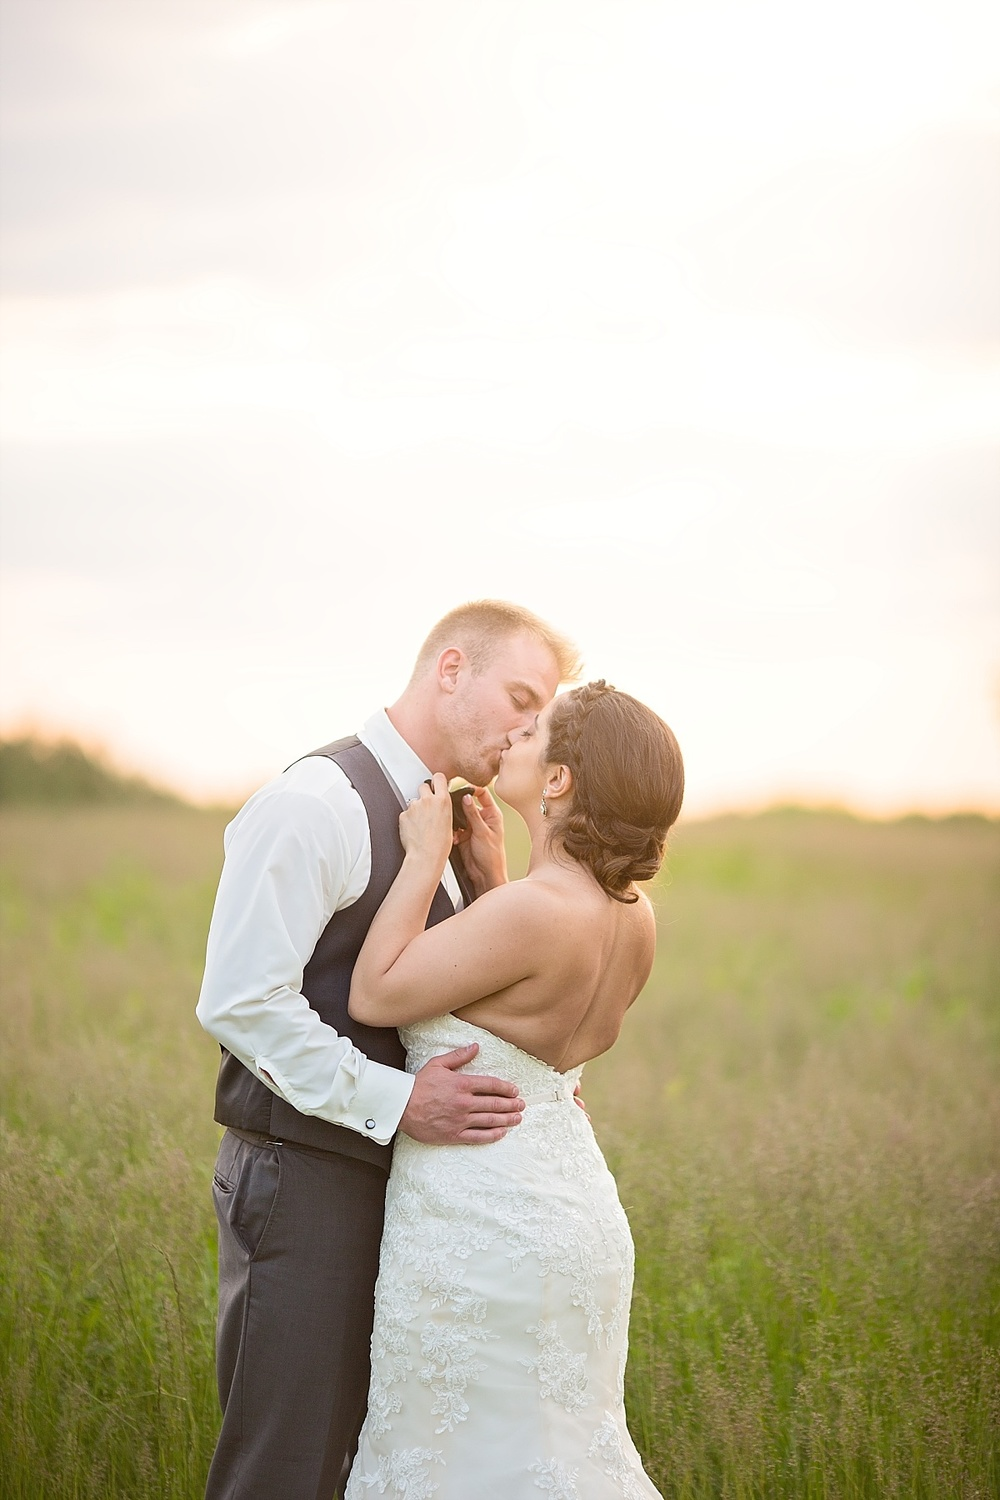 Quad Cities Wedding Photographer | Miriam Bulcher Photography | www.miriambulcher.com